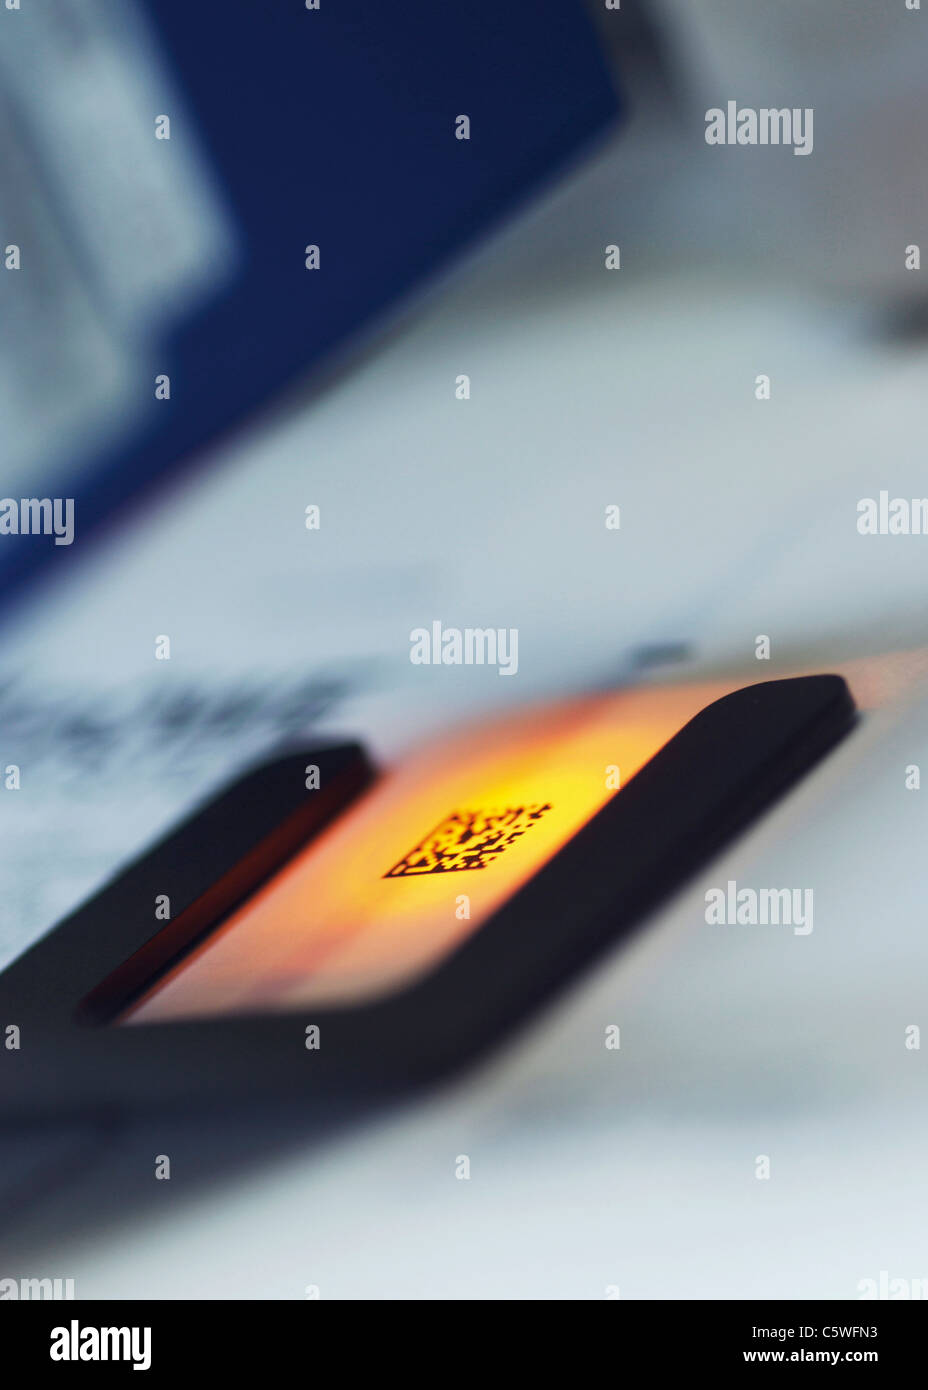 Micro-circuitry switch, close up - Stock Image